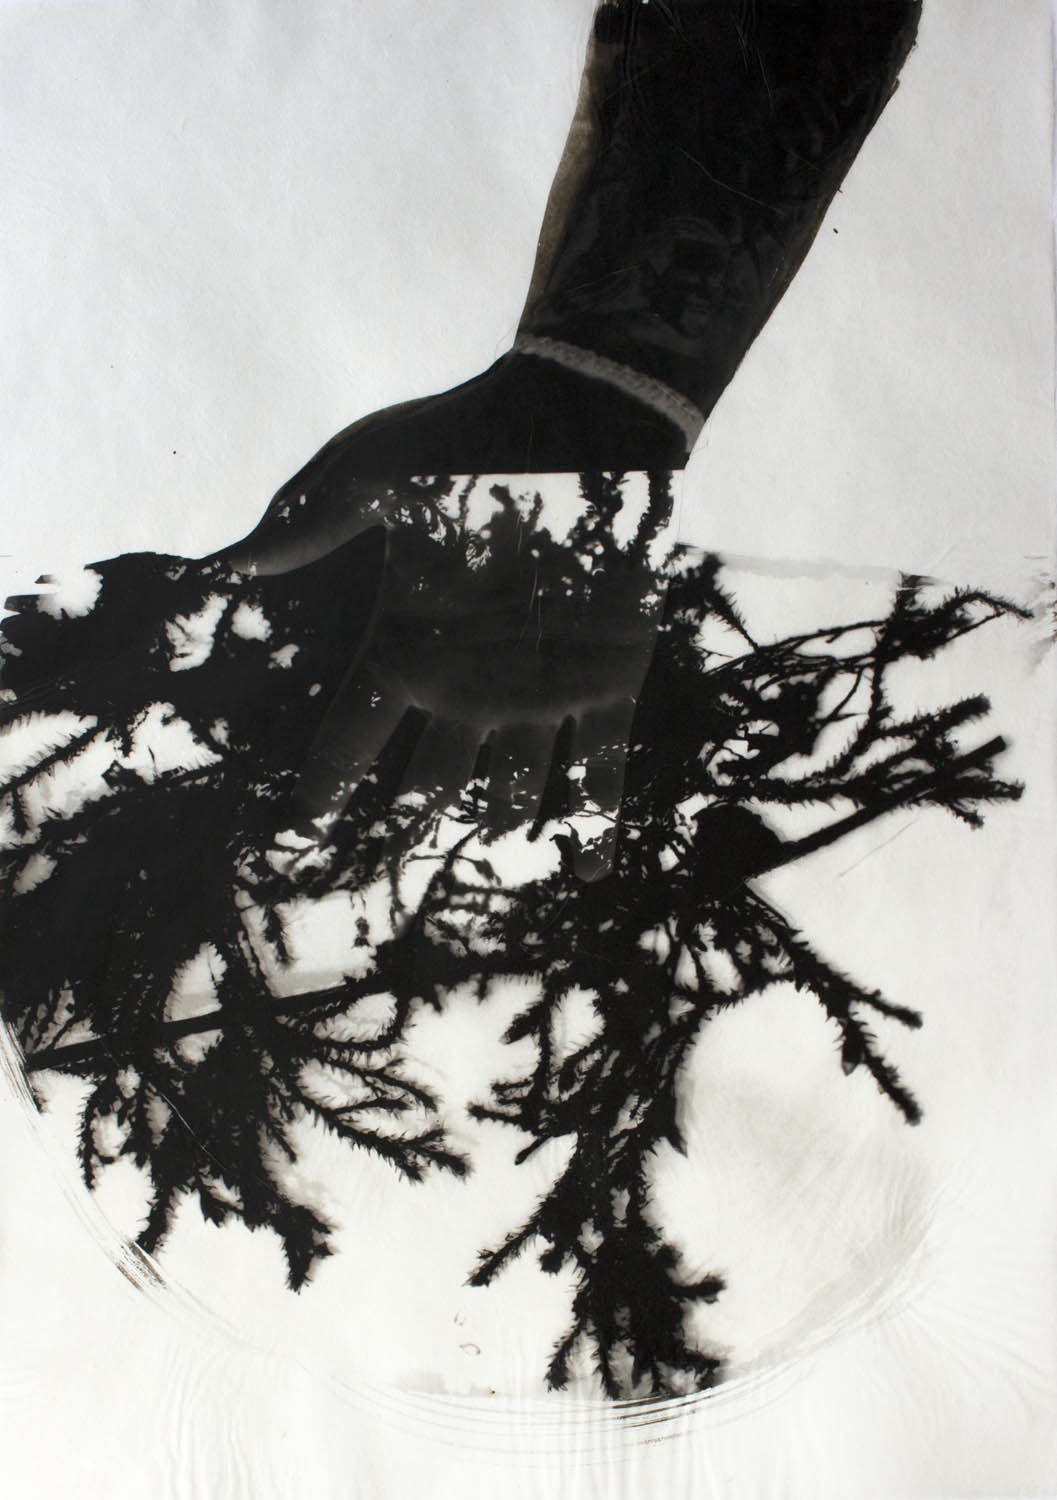 A man has his hand in moss in this graphically black and white print.